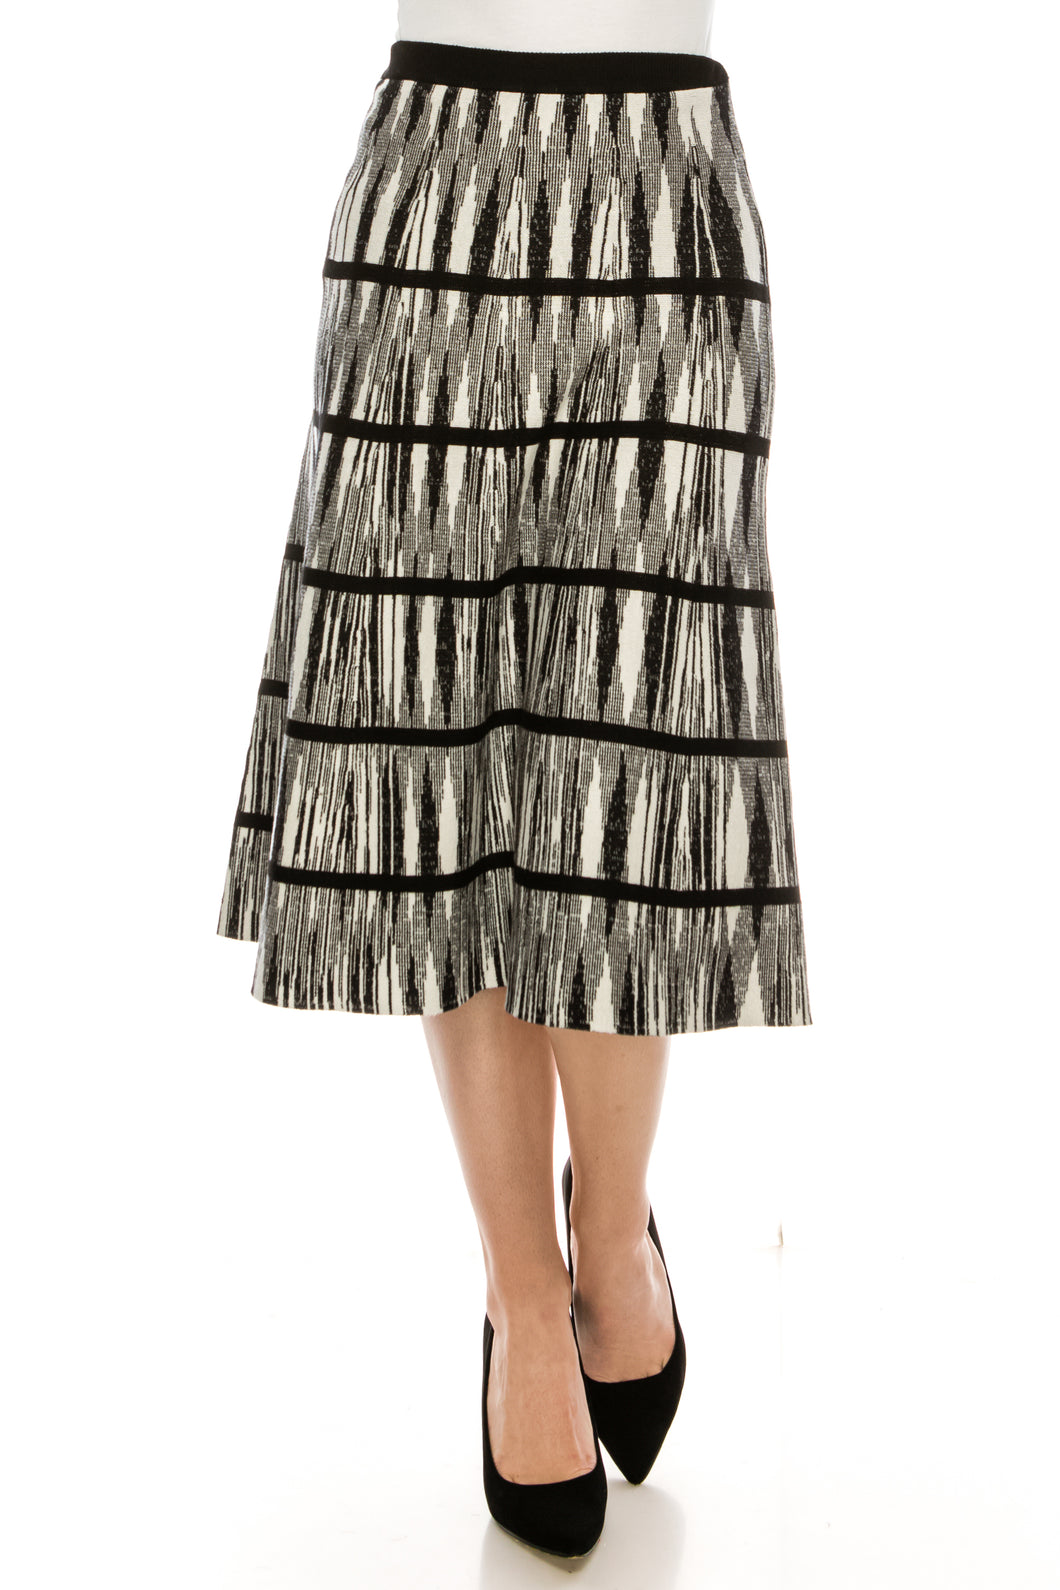 YAL SPACE DYE PRINTED KNIT SKIRT